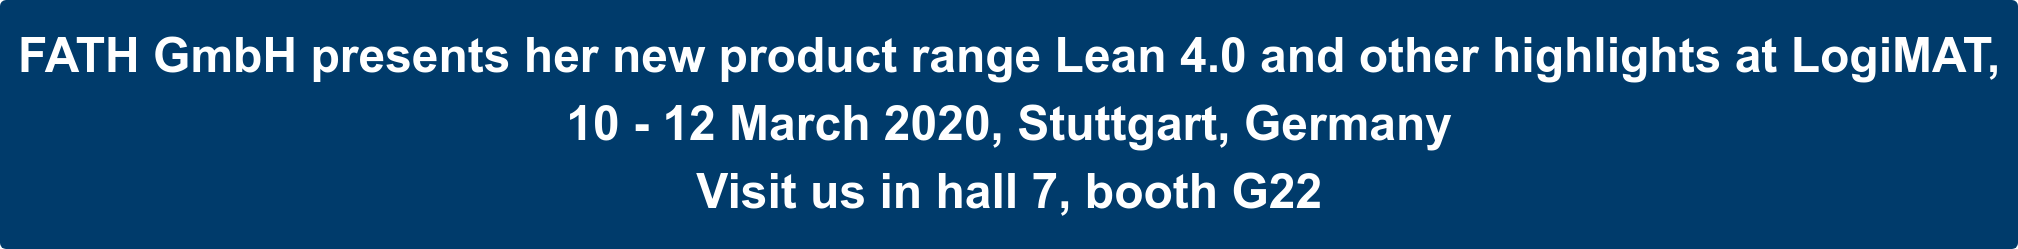 FATH GmbH presents her new product range Lean 4.0 and other highlights at  LogiMAT,  10 - 12 March 2020, Stuttgart, Germany  Visit us in hall 7, booth G22